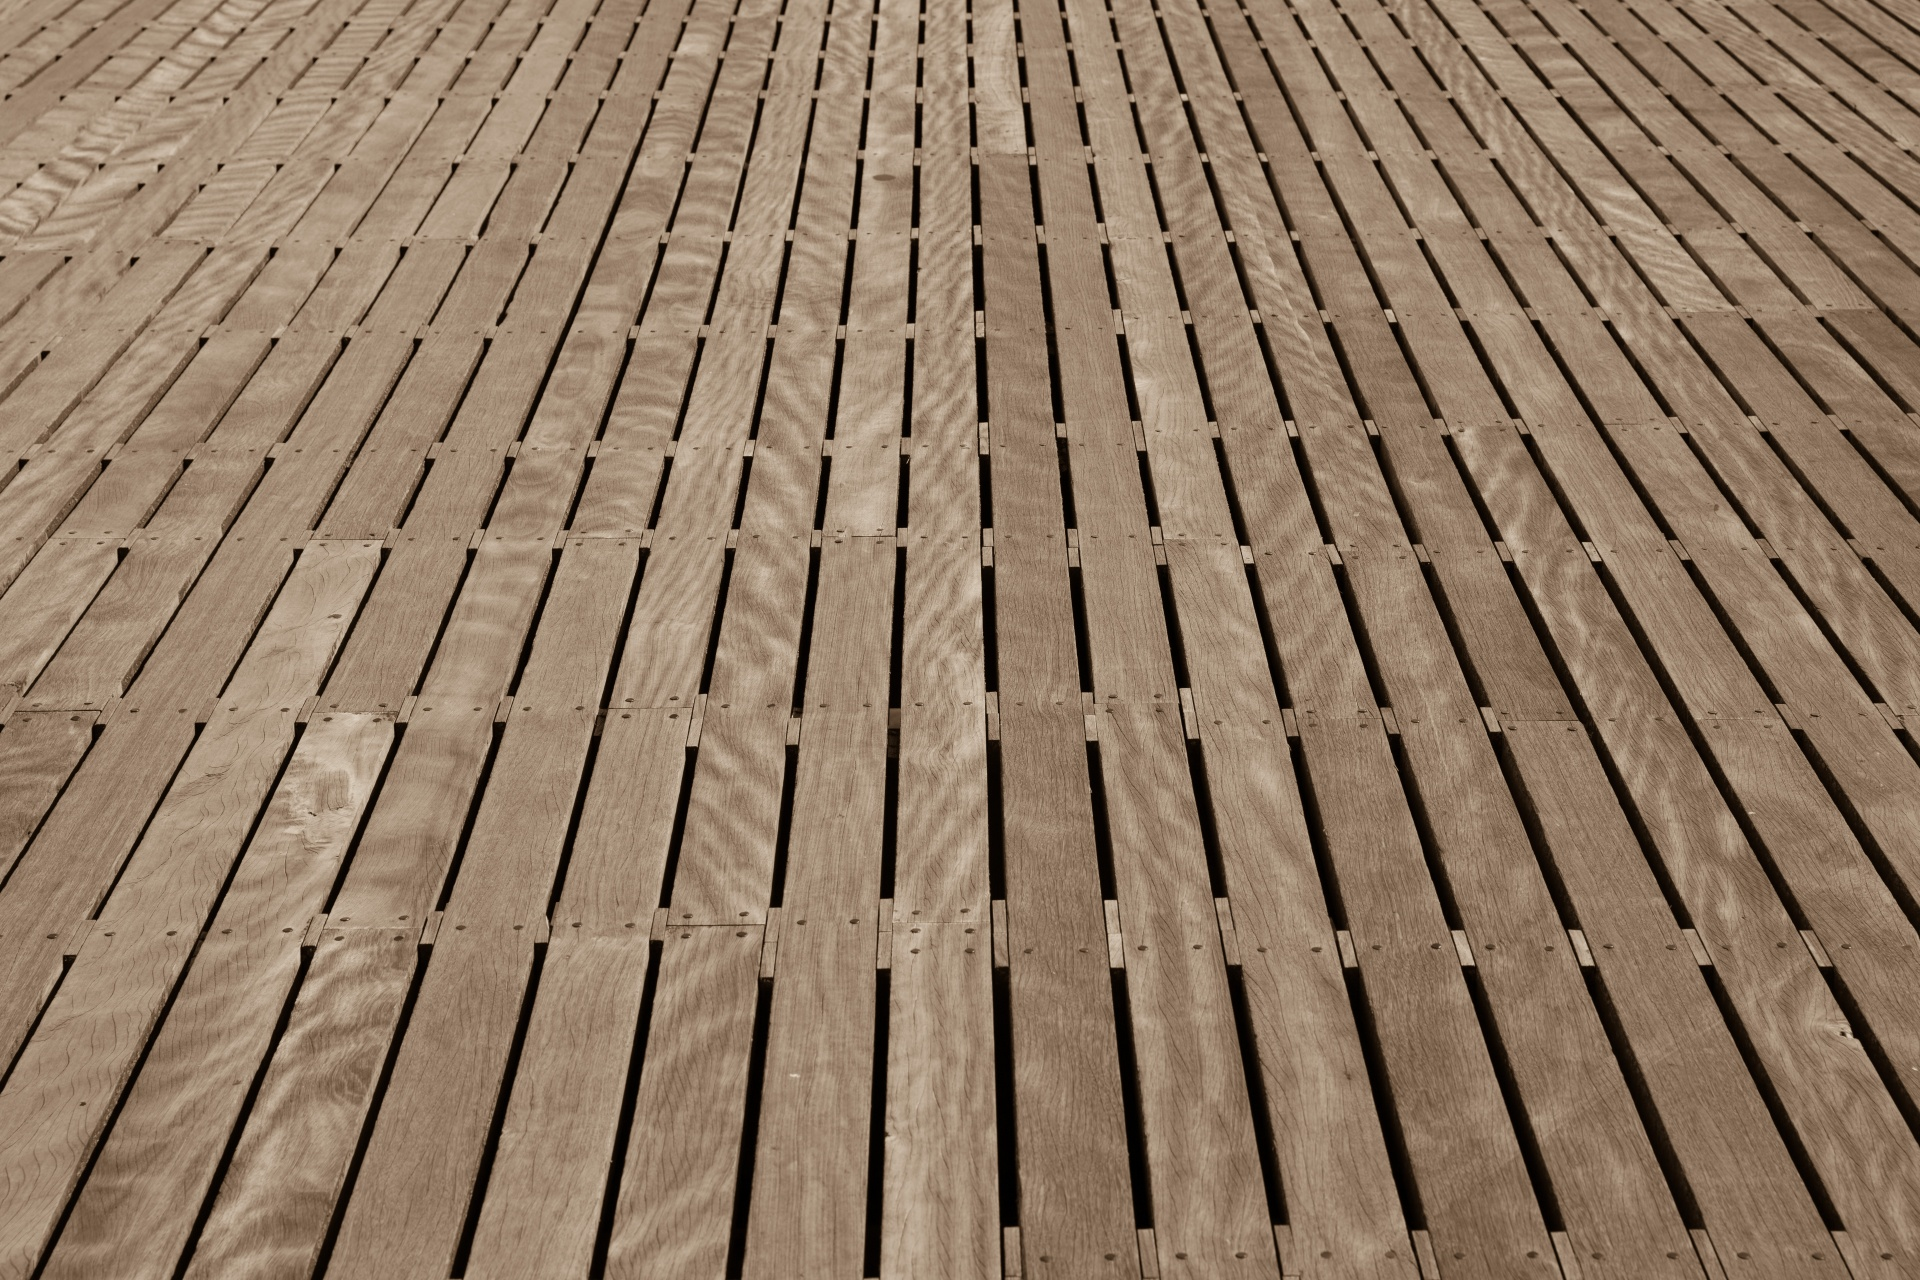 Wooden Deck Background Free Stock Photo - Public Domain Pictures